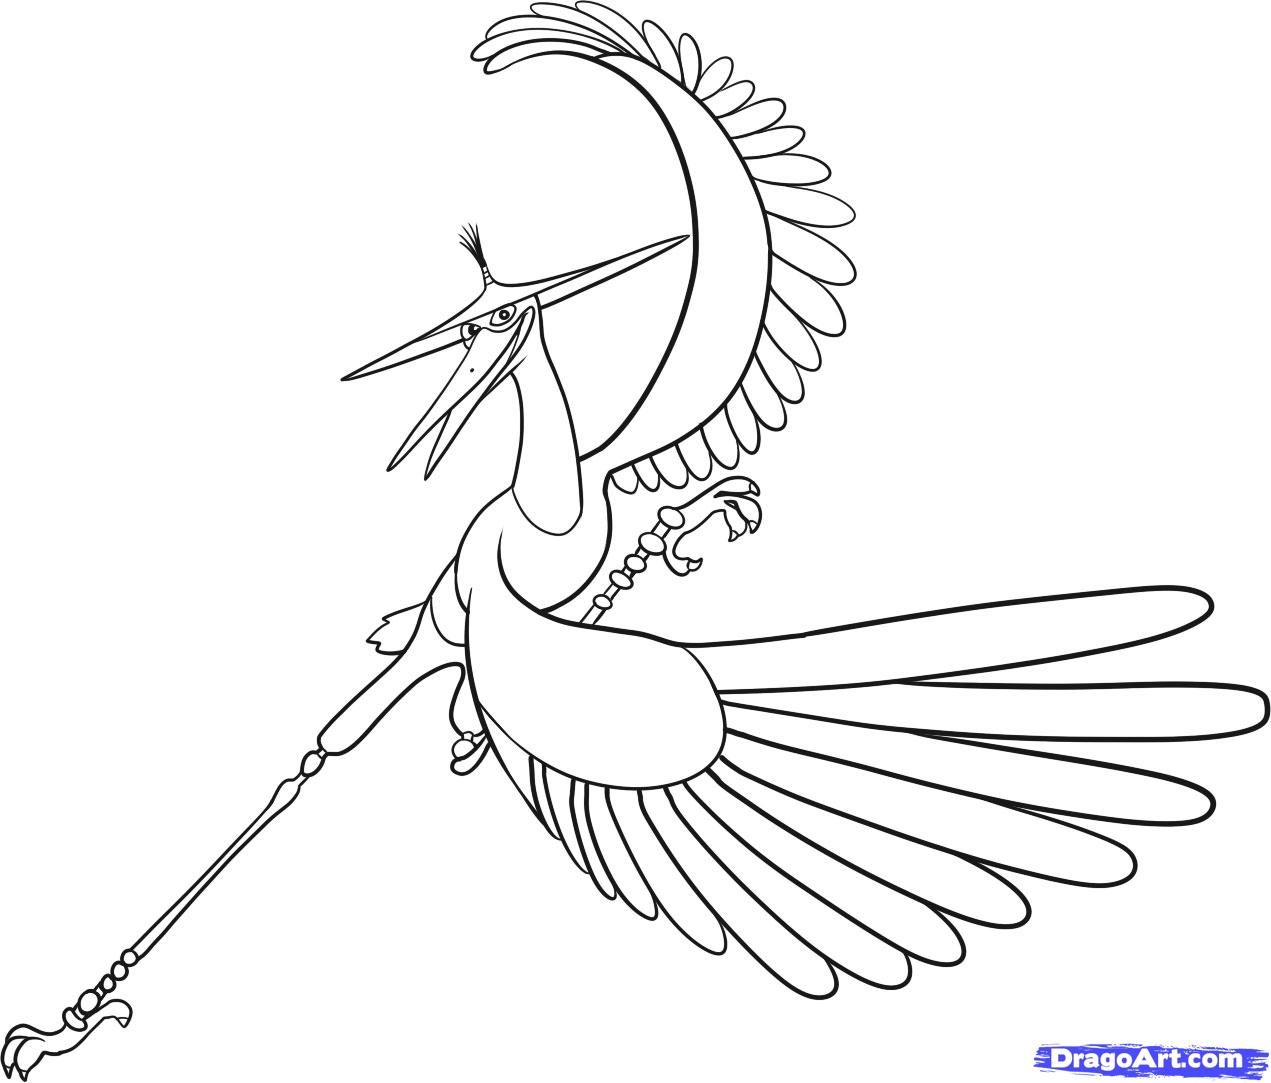 Printable coloring pages kung fu panda - How To Draw Crane Master Crane Kung Fu Panda Step By Step